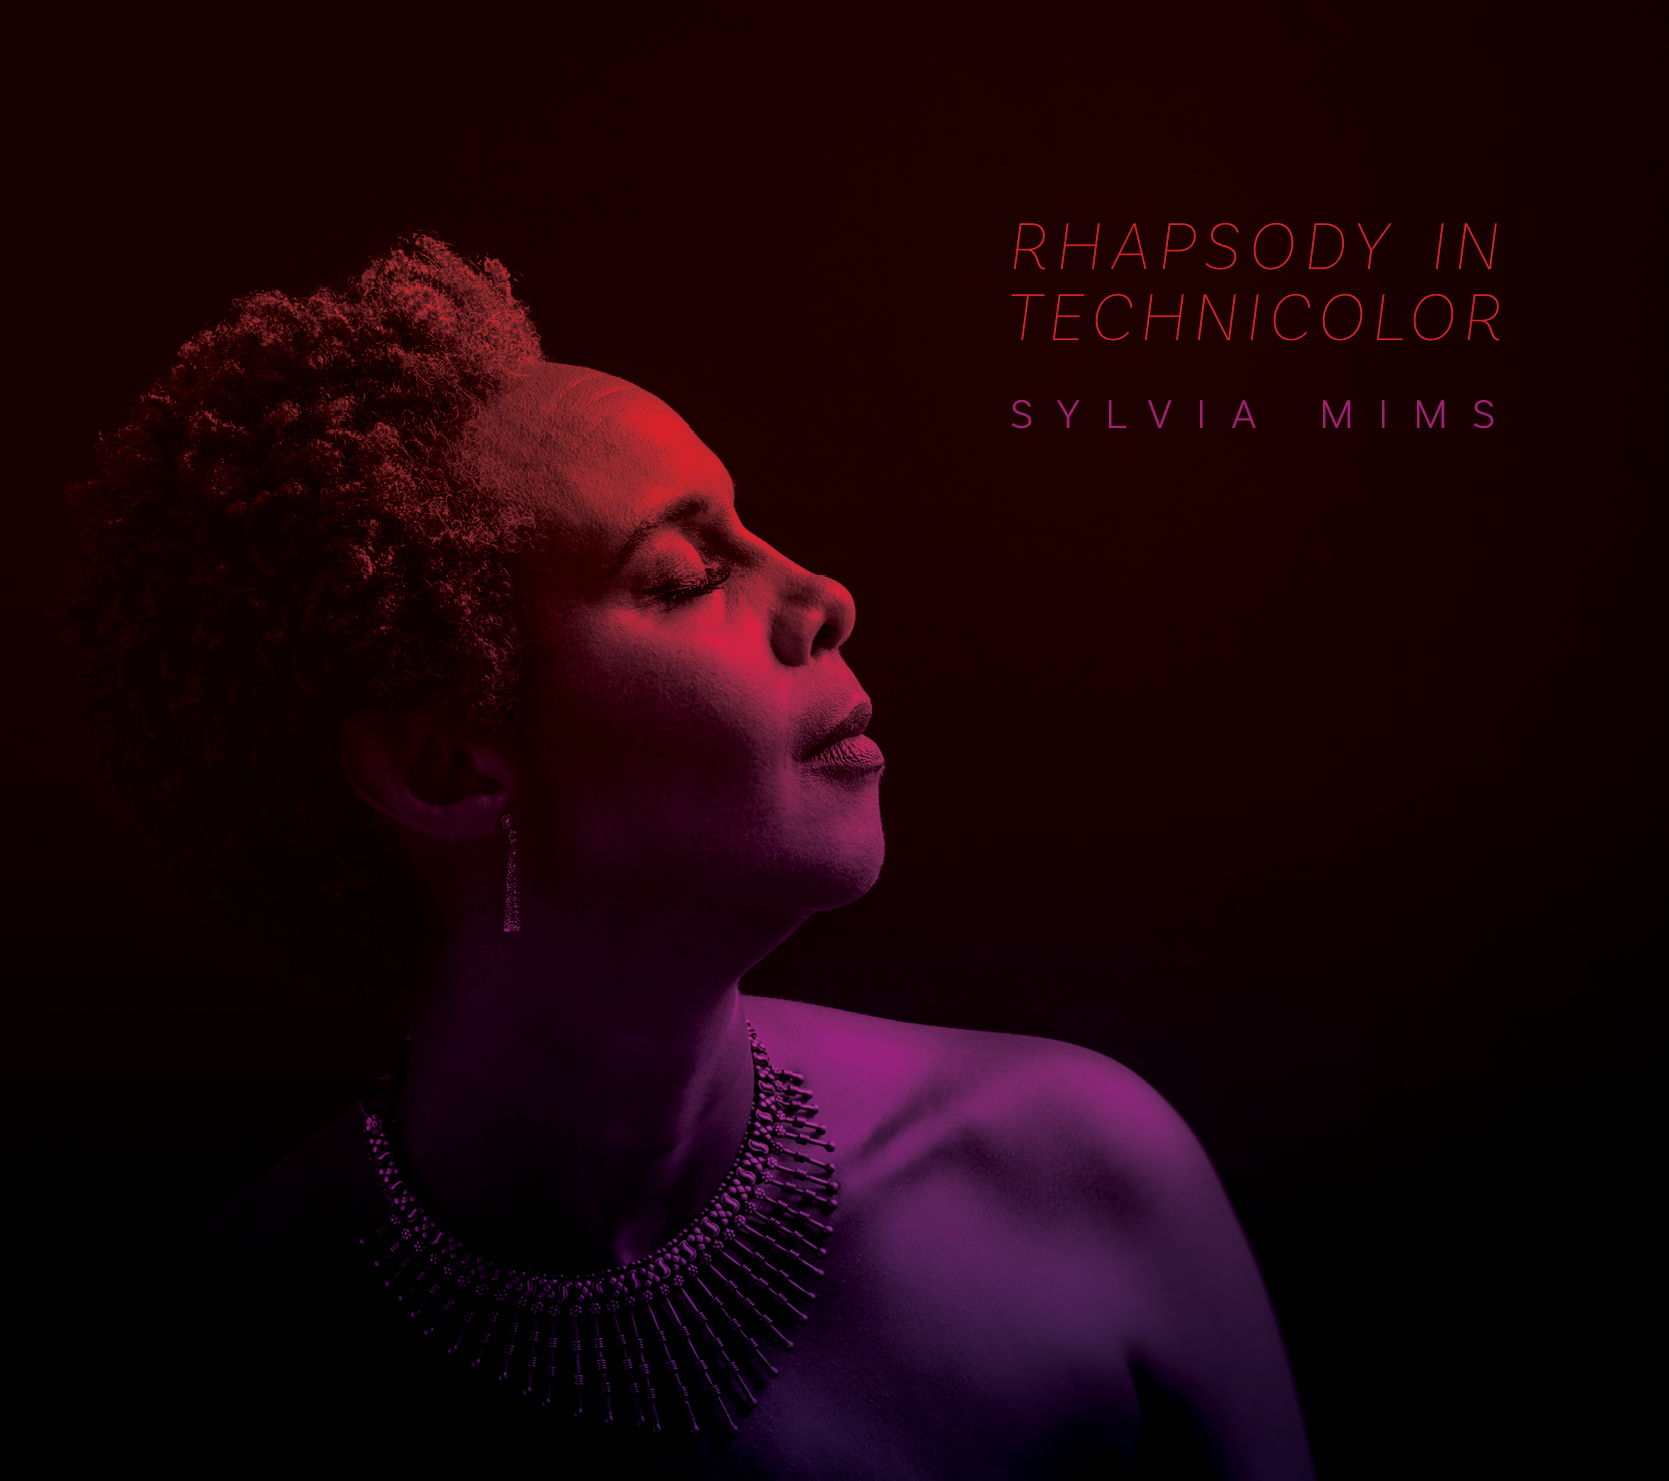 SM_RhapsodyInTechnicolor_cover